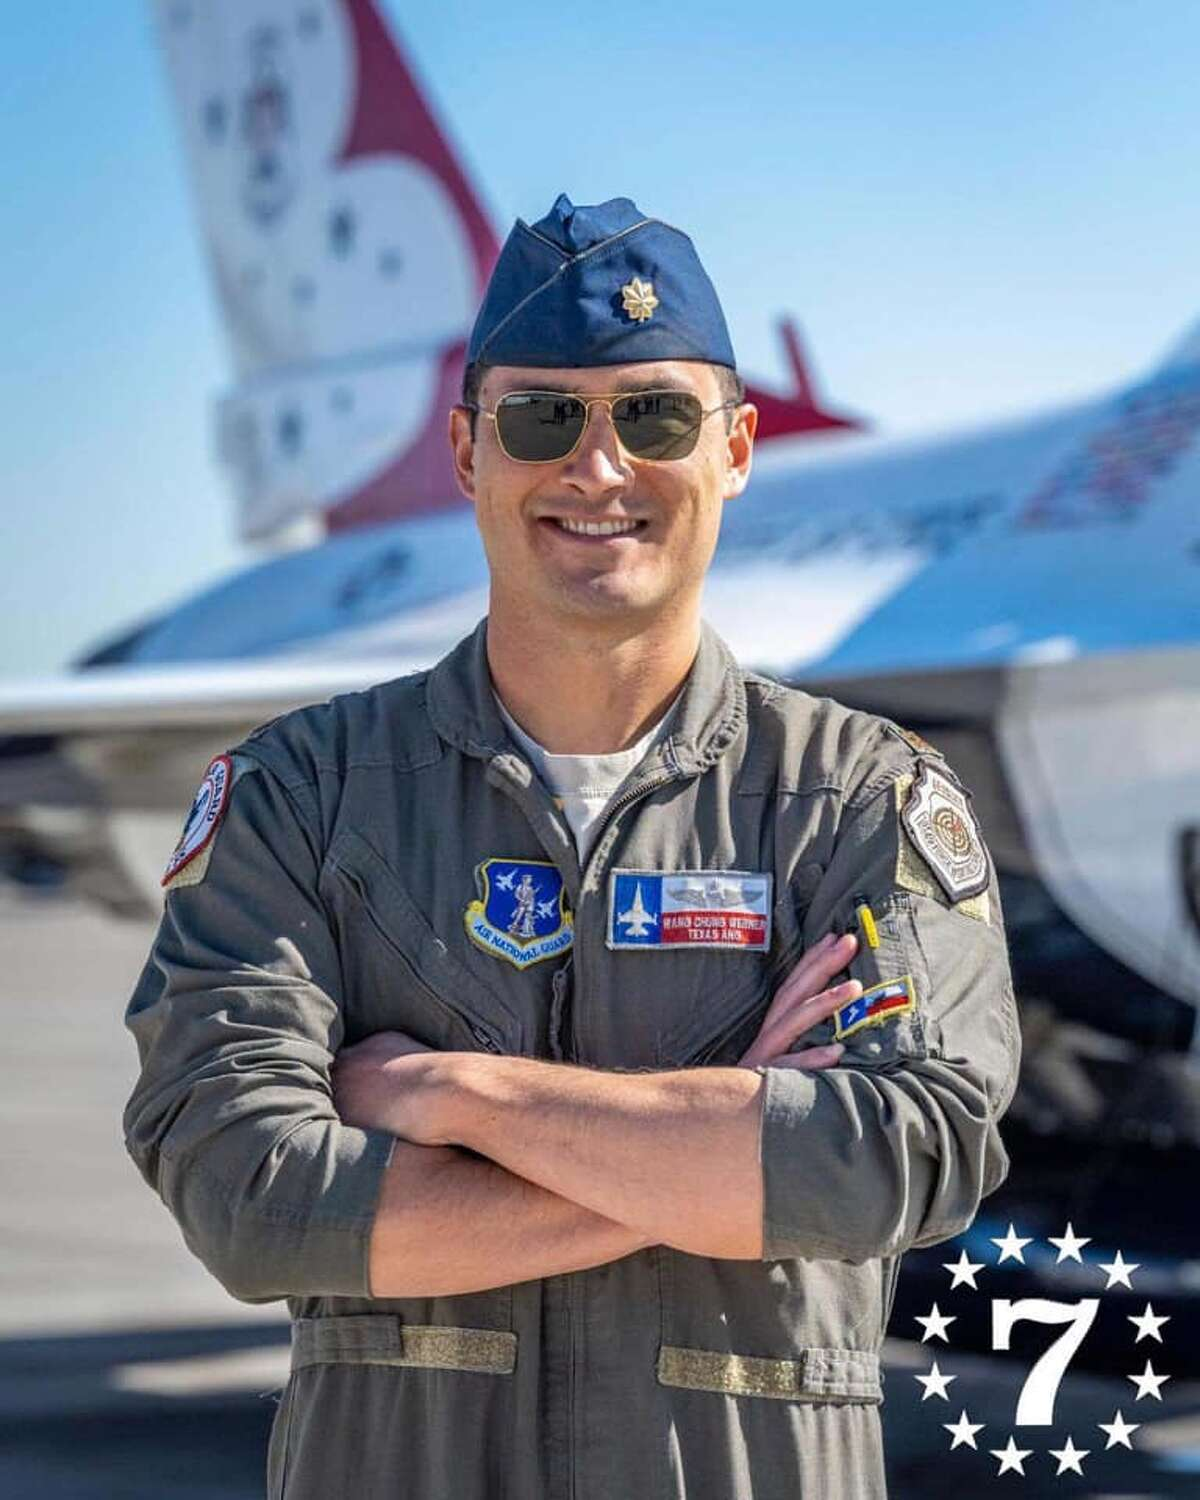 """The United States Air Force Air Demonstration Squadron, known as the """"Thunderbirds,"""" announced selections for the 2021-2022 show seasons on Wednesday. Maj. Thomas Werner, of the 182nd Fighter Squadron at Texas Air National Guard, will fly the No. 7 jet, serving as the team's operations officer."""